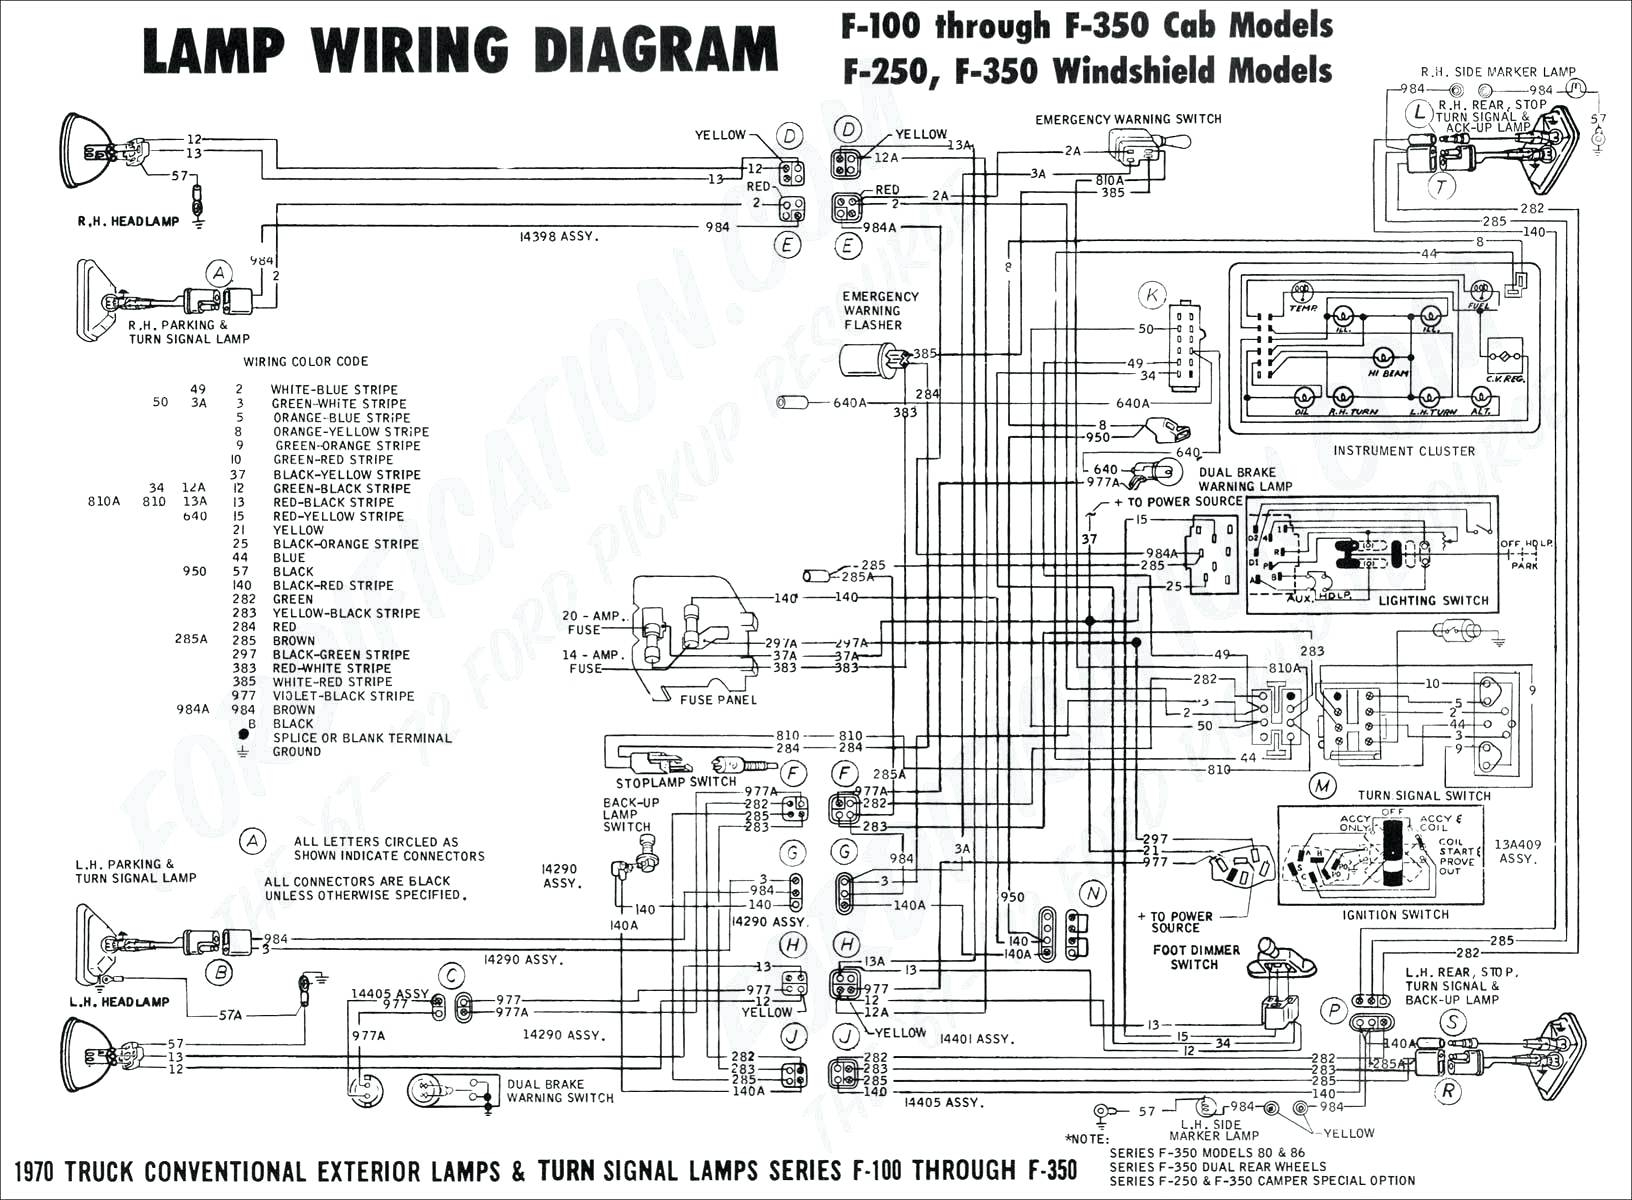 1994 Dodge B250 Engine Diagram Wiring Schematic Wiring Diagram Teach Teach Lechicchedimammavale It